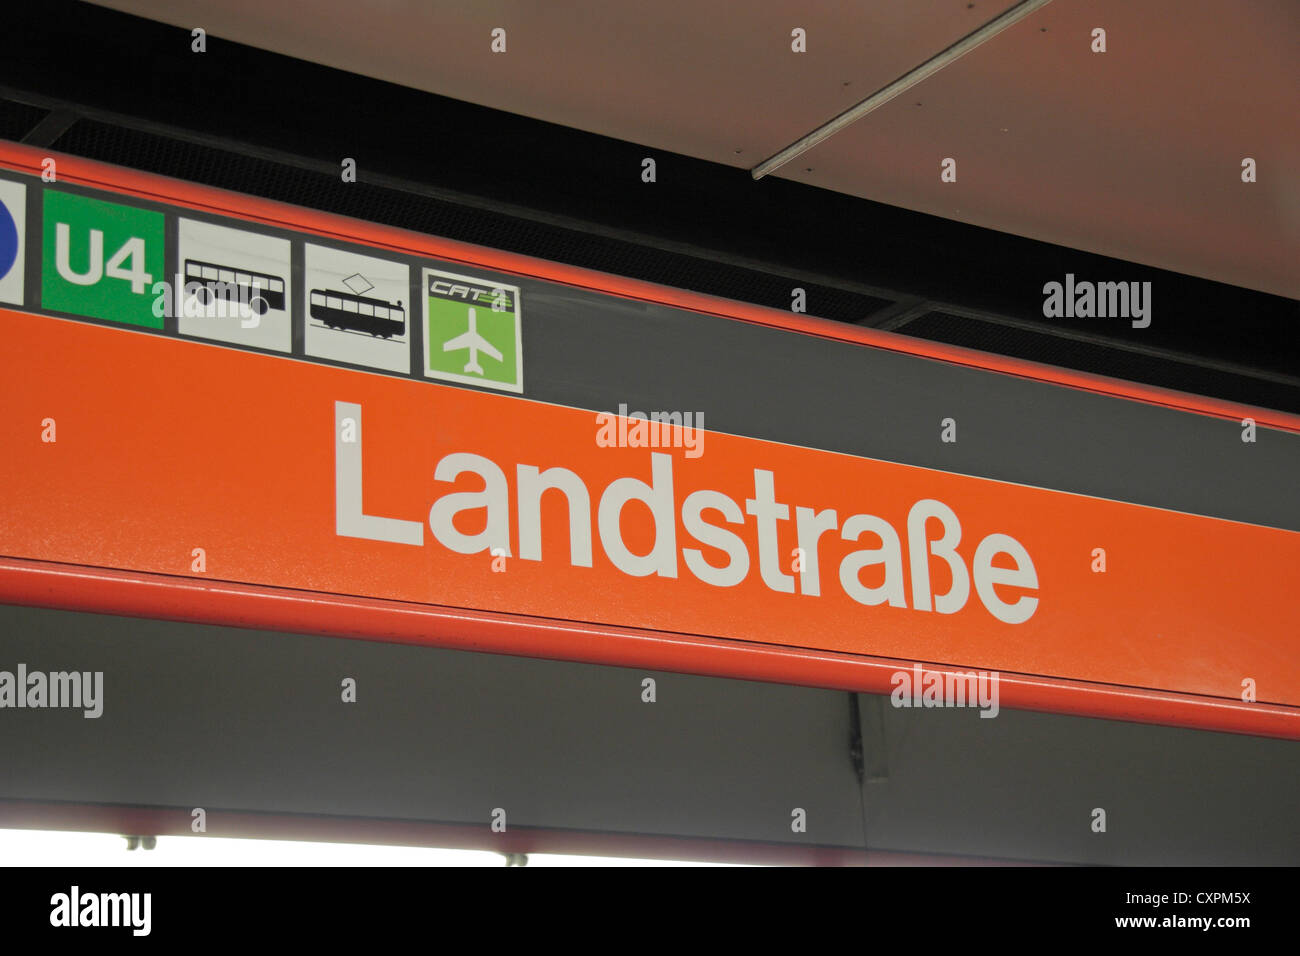 Station name outside the Landstrasse in Vienna (Wien), Austria. Stock Photo